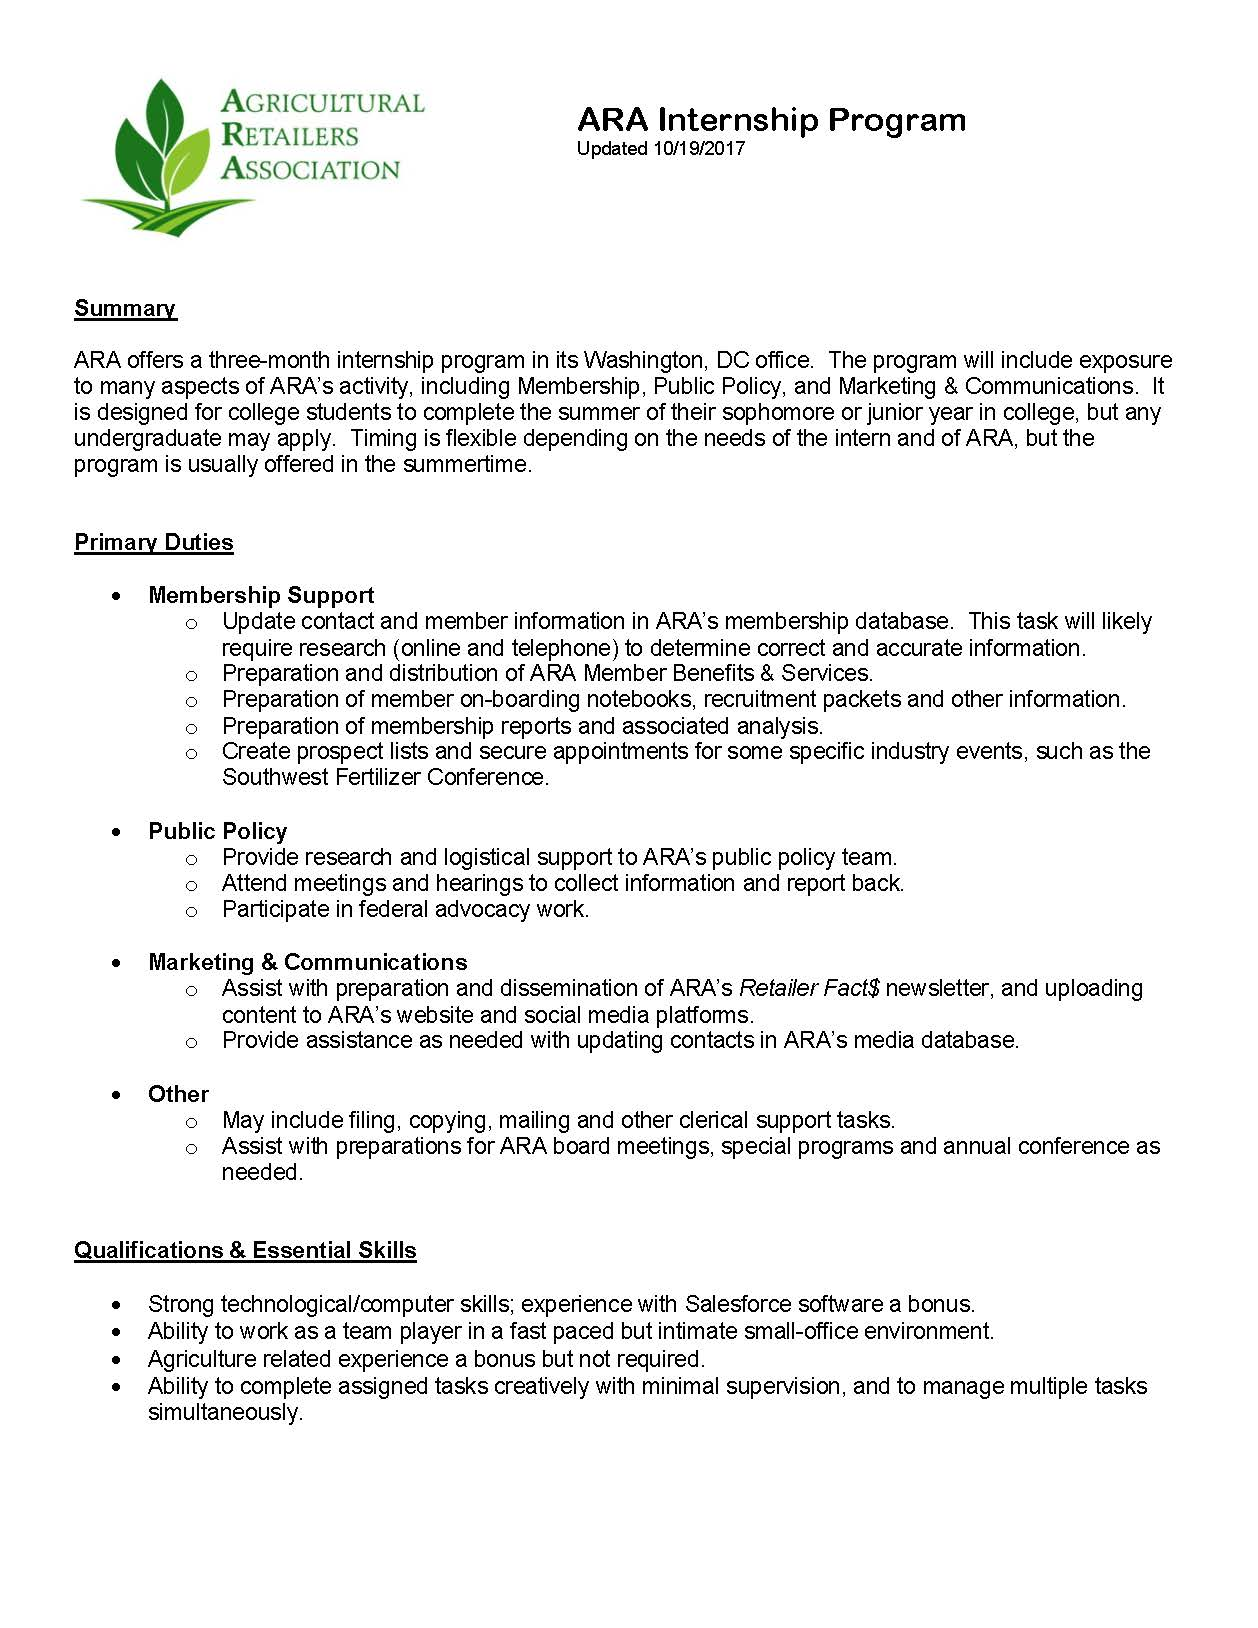 nutrition application internship Applying to a nutrition internship is a great way to contribute to the cause interns in nutrition can find positions with universities, hospitals, medical school, fitness centers etc nutrition internships help students expose themselves to a vast array of careers.